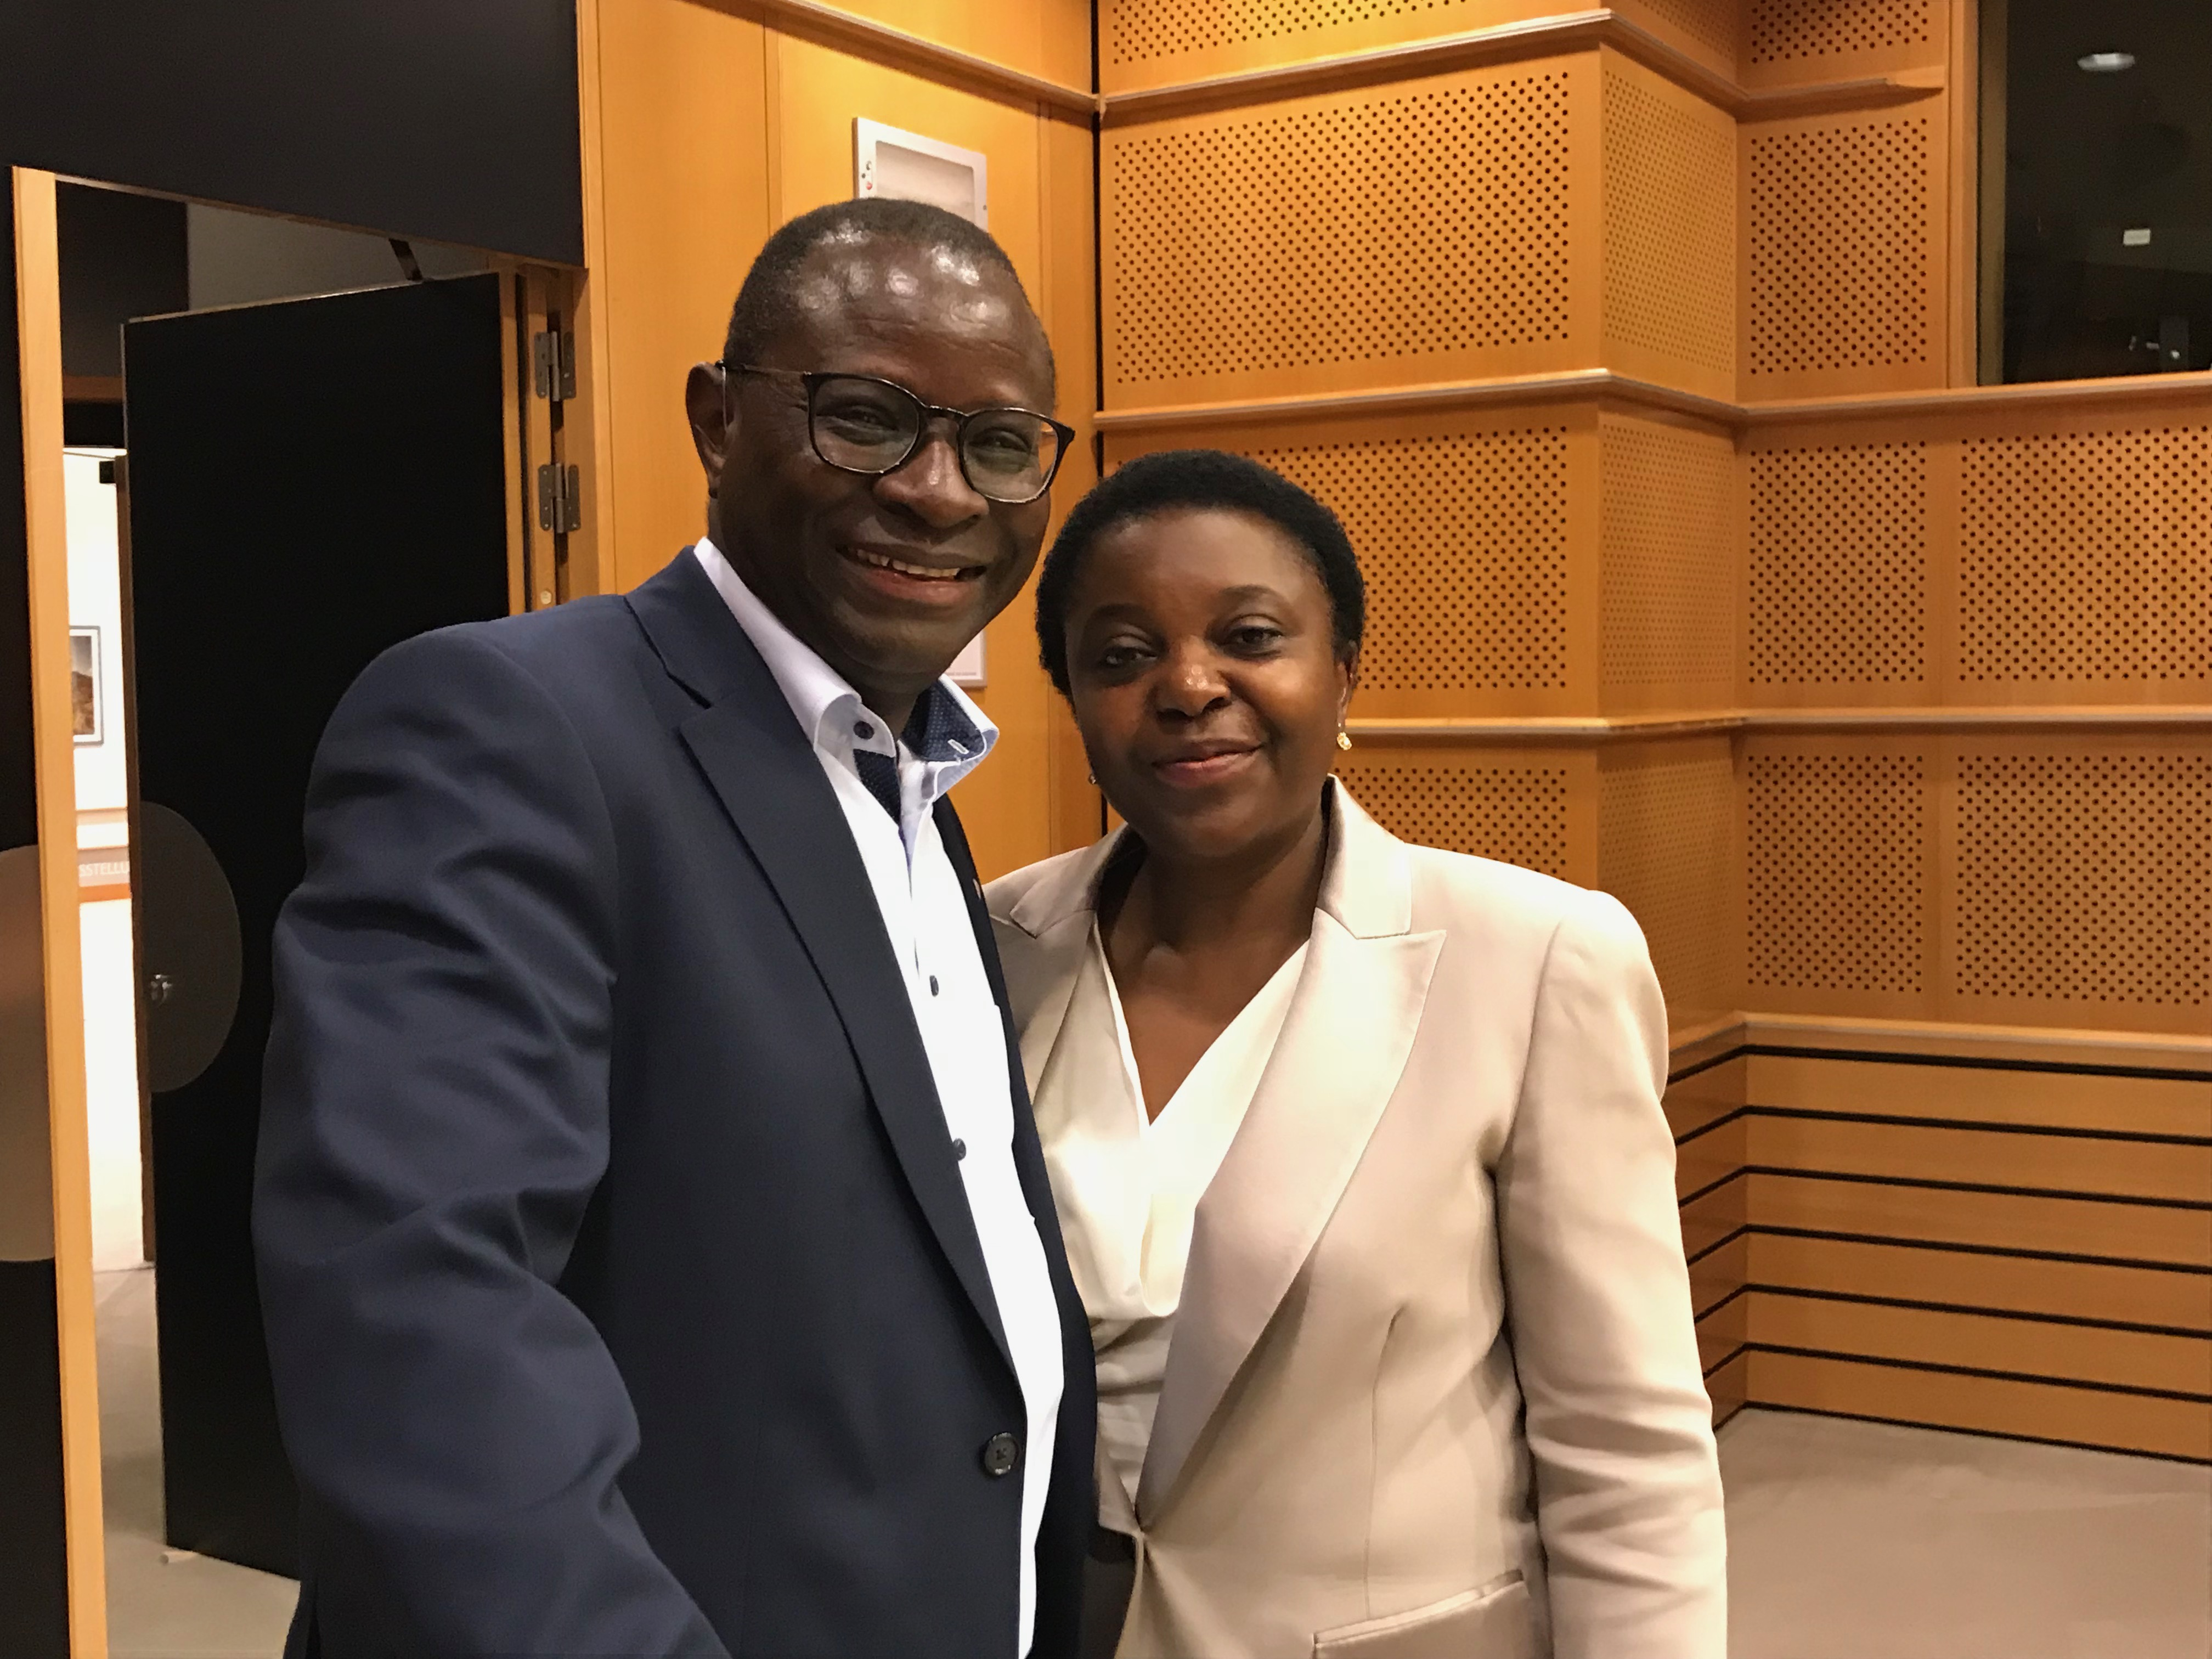 German MP Karamba Diaby and MEP Cecile Kyenge